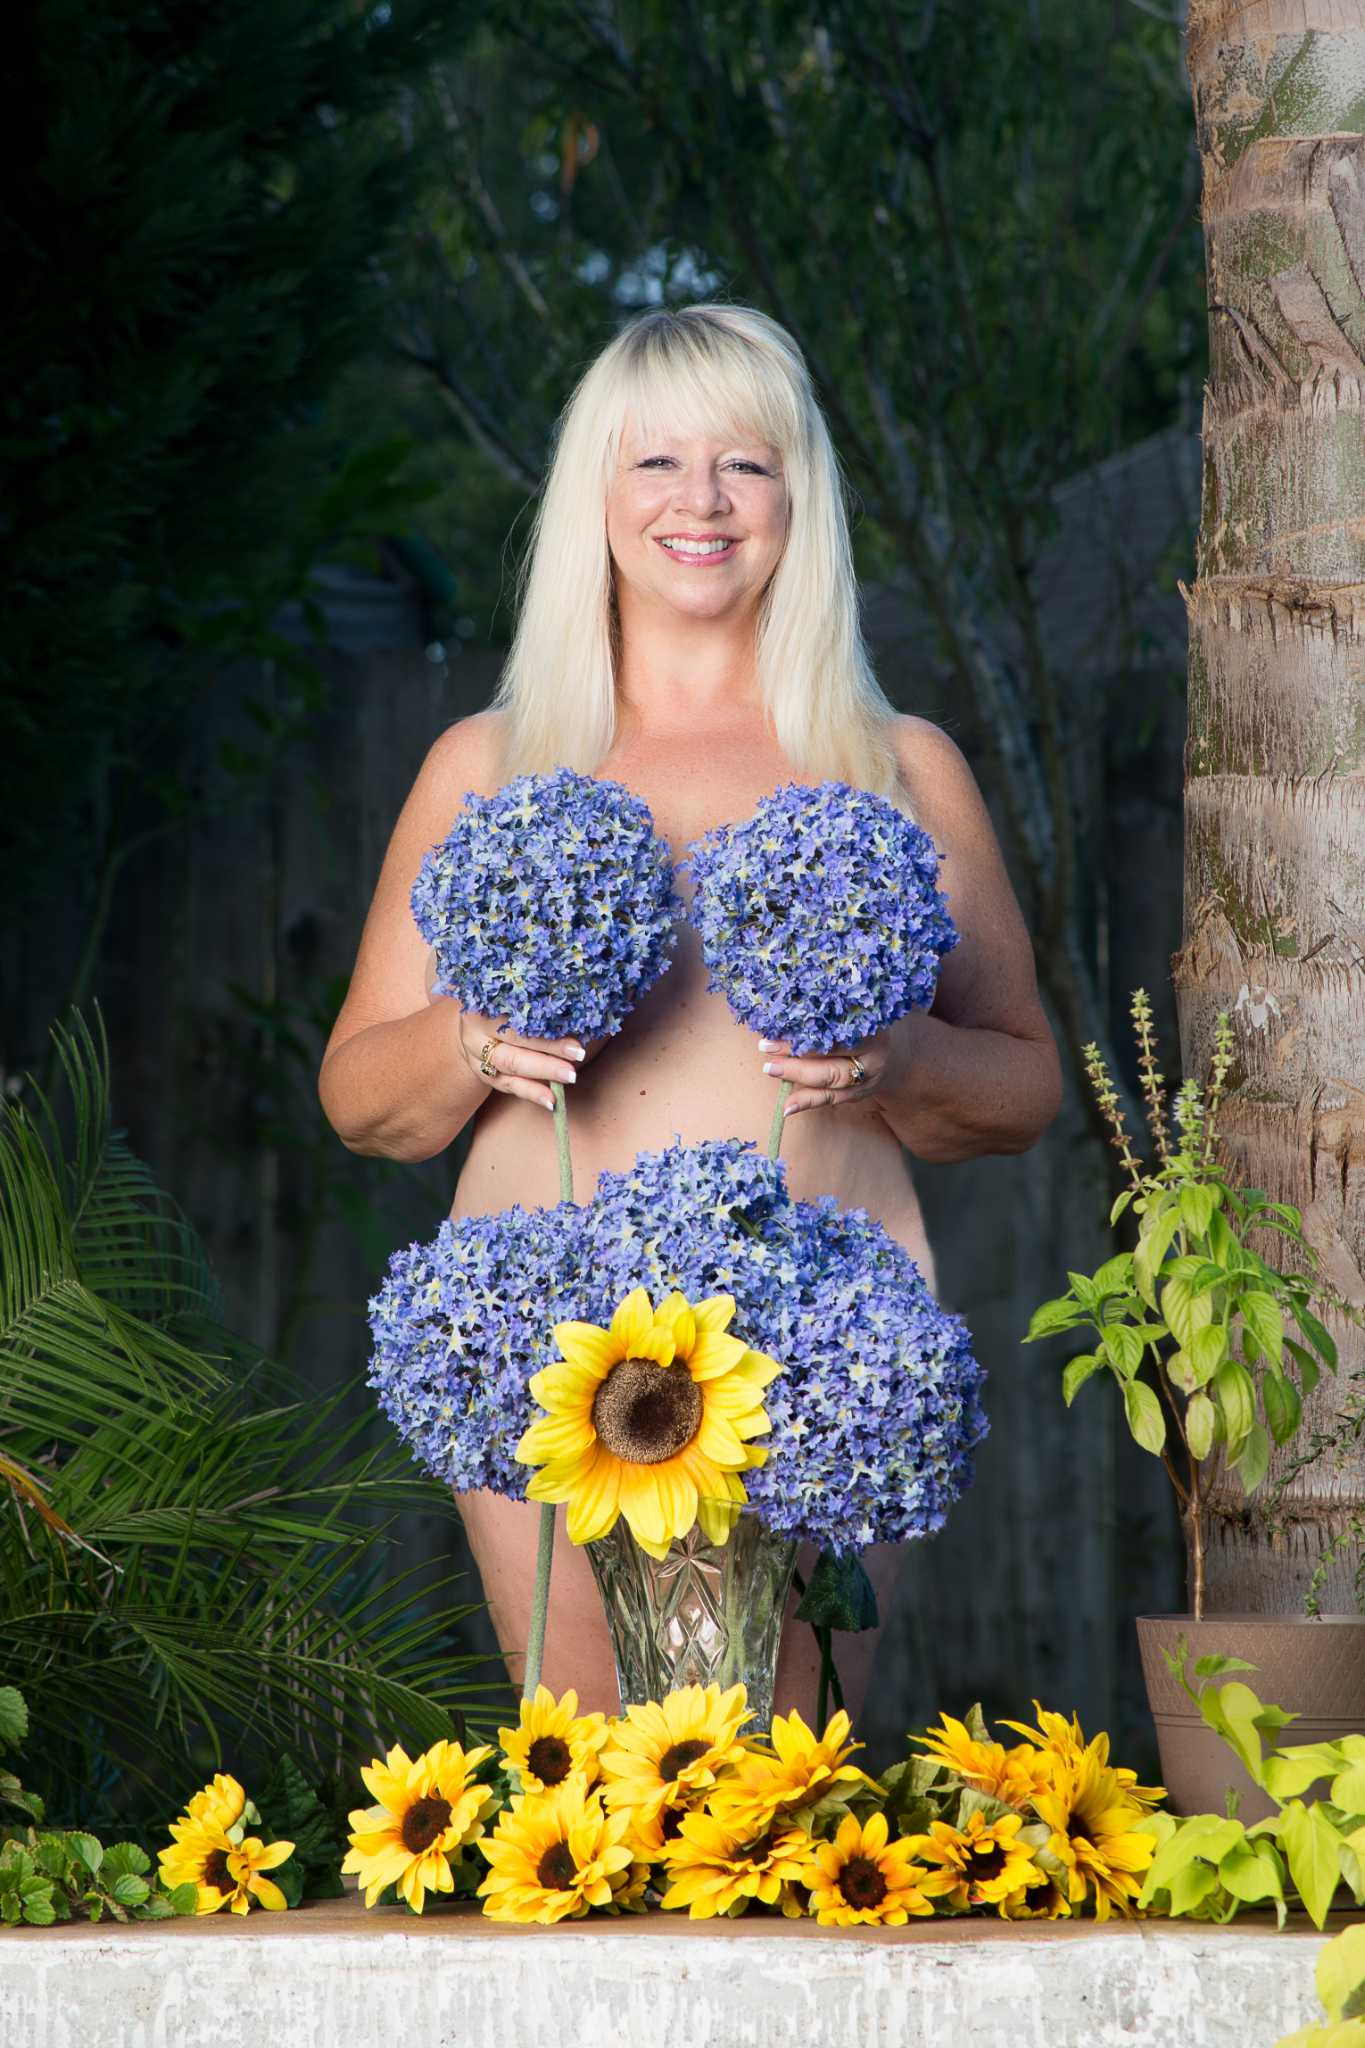 Nude shots of 'Calendar Girls' cast spark interest in play ...